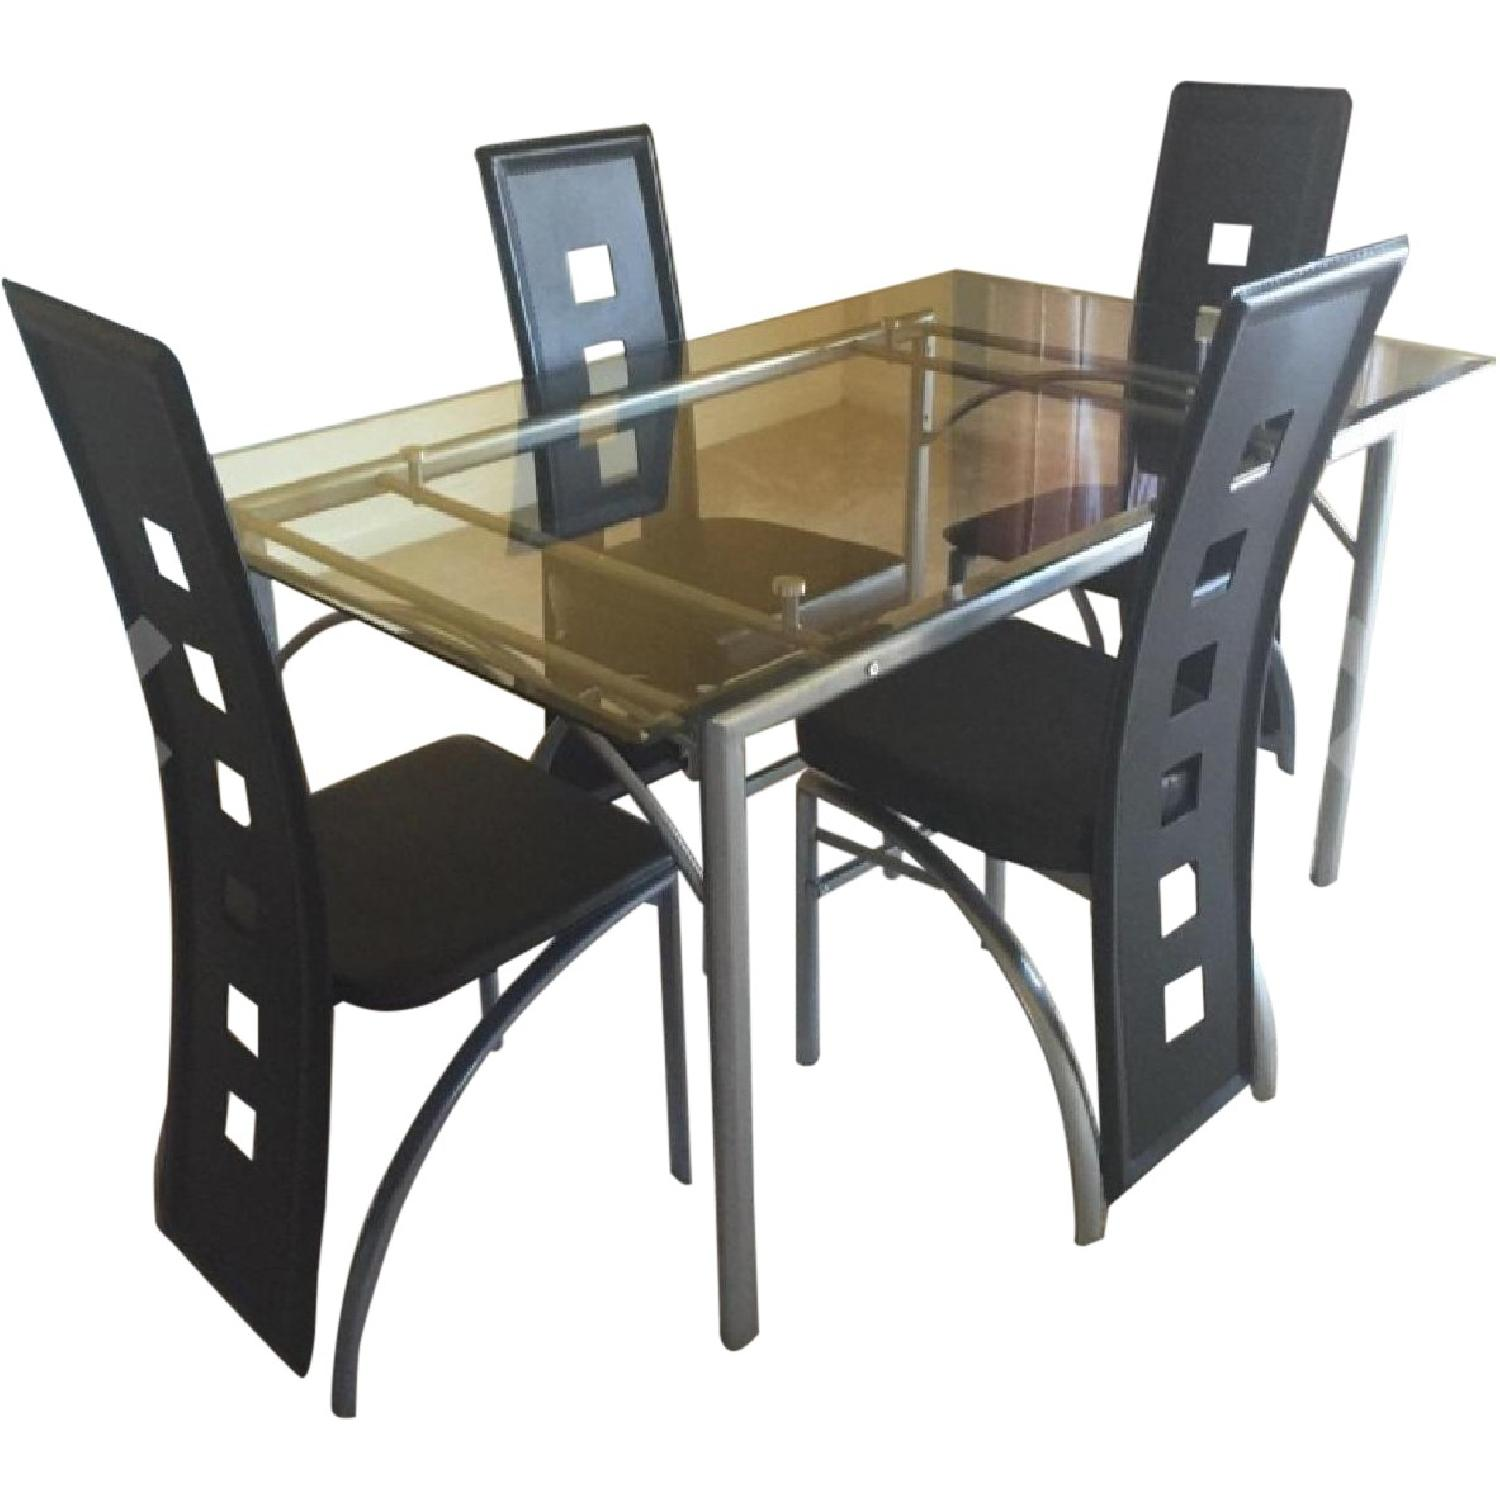 Coaster Glass Top Dining Table w/ Matte Silver Frame - image-3